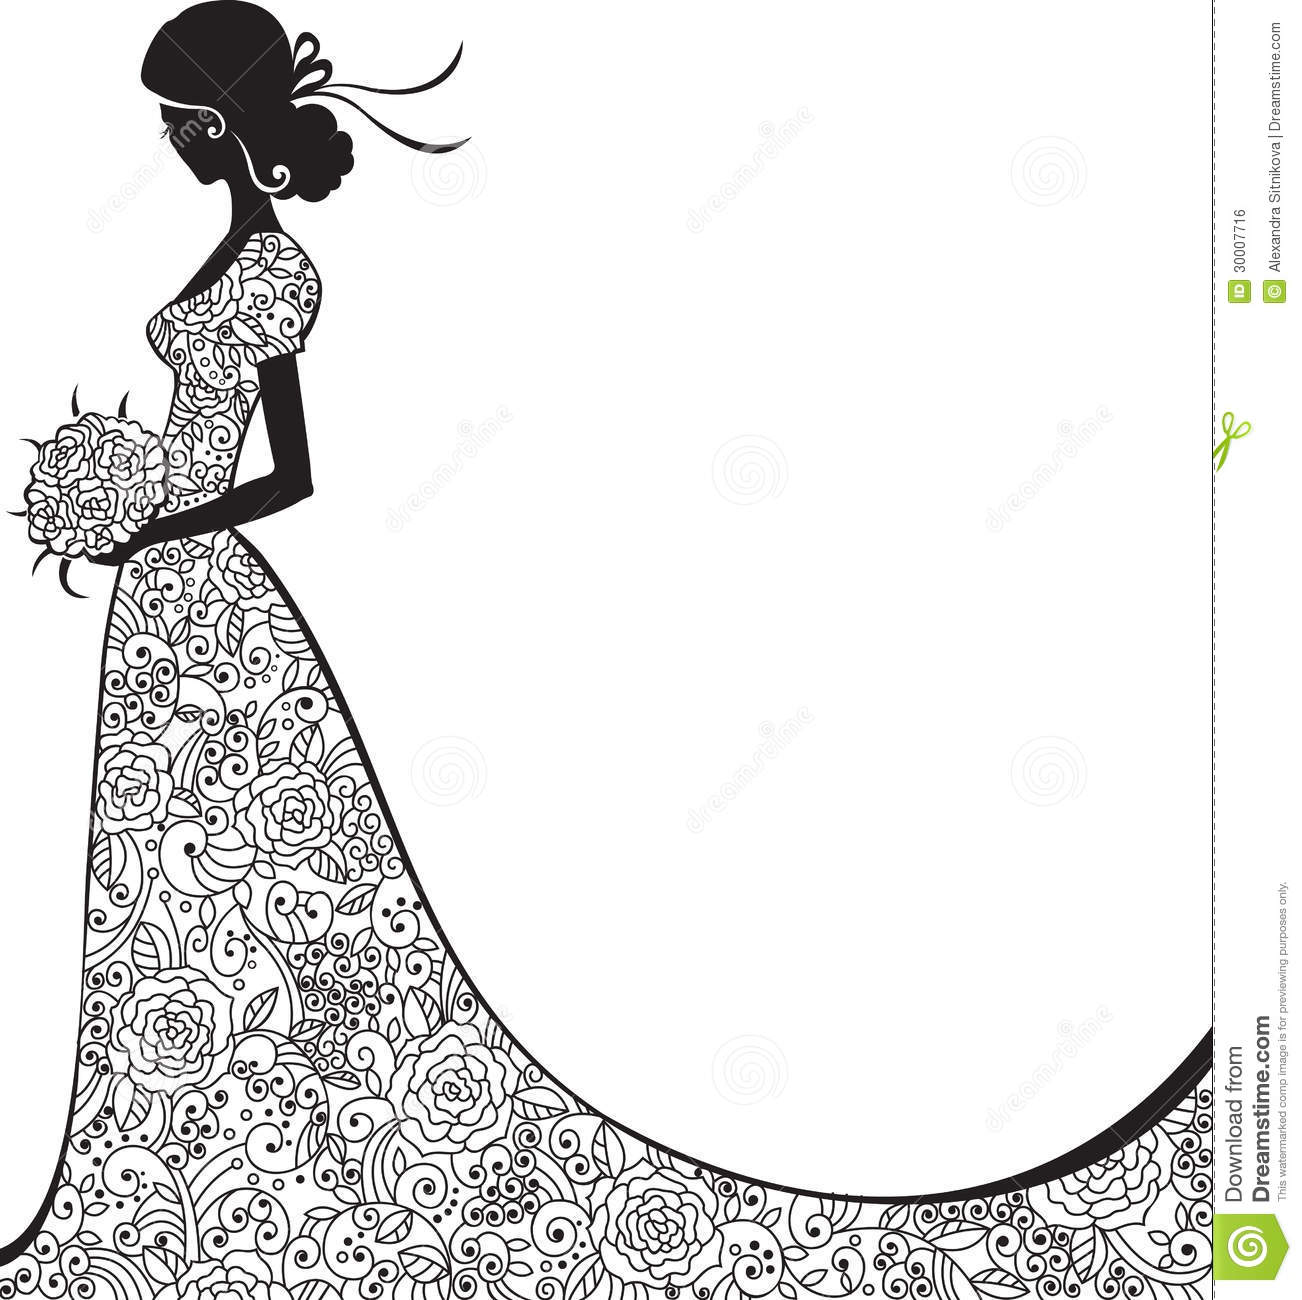 INSTANT DOWNLOAD, wedding dress clipart, silhouette clipart, for.